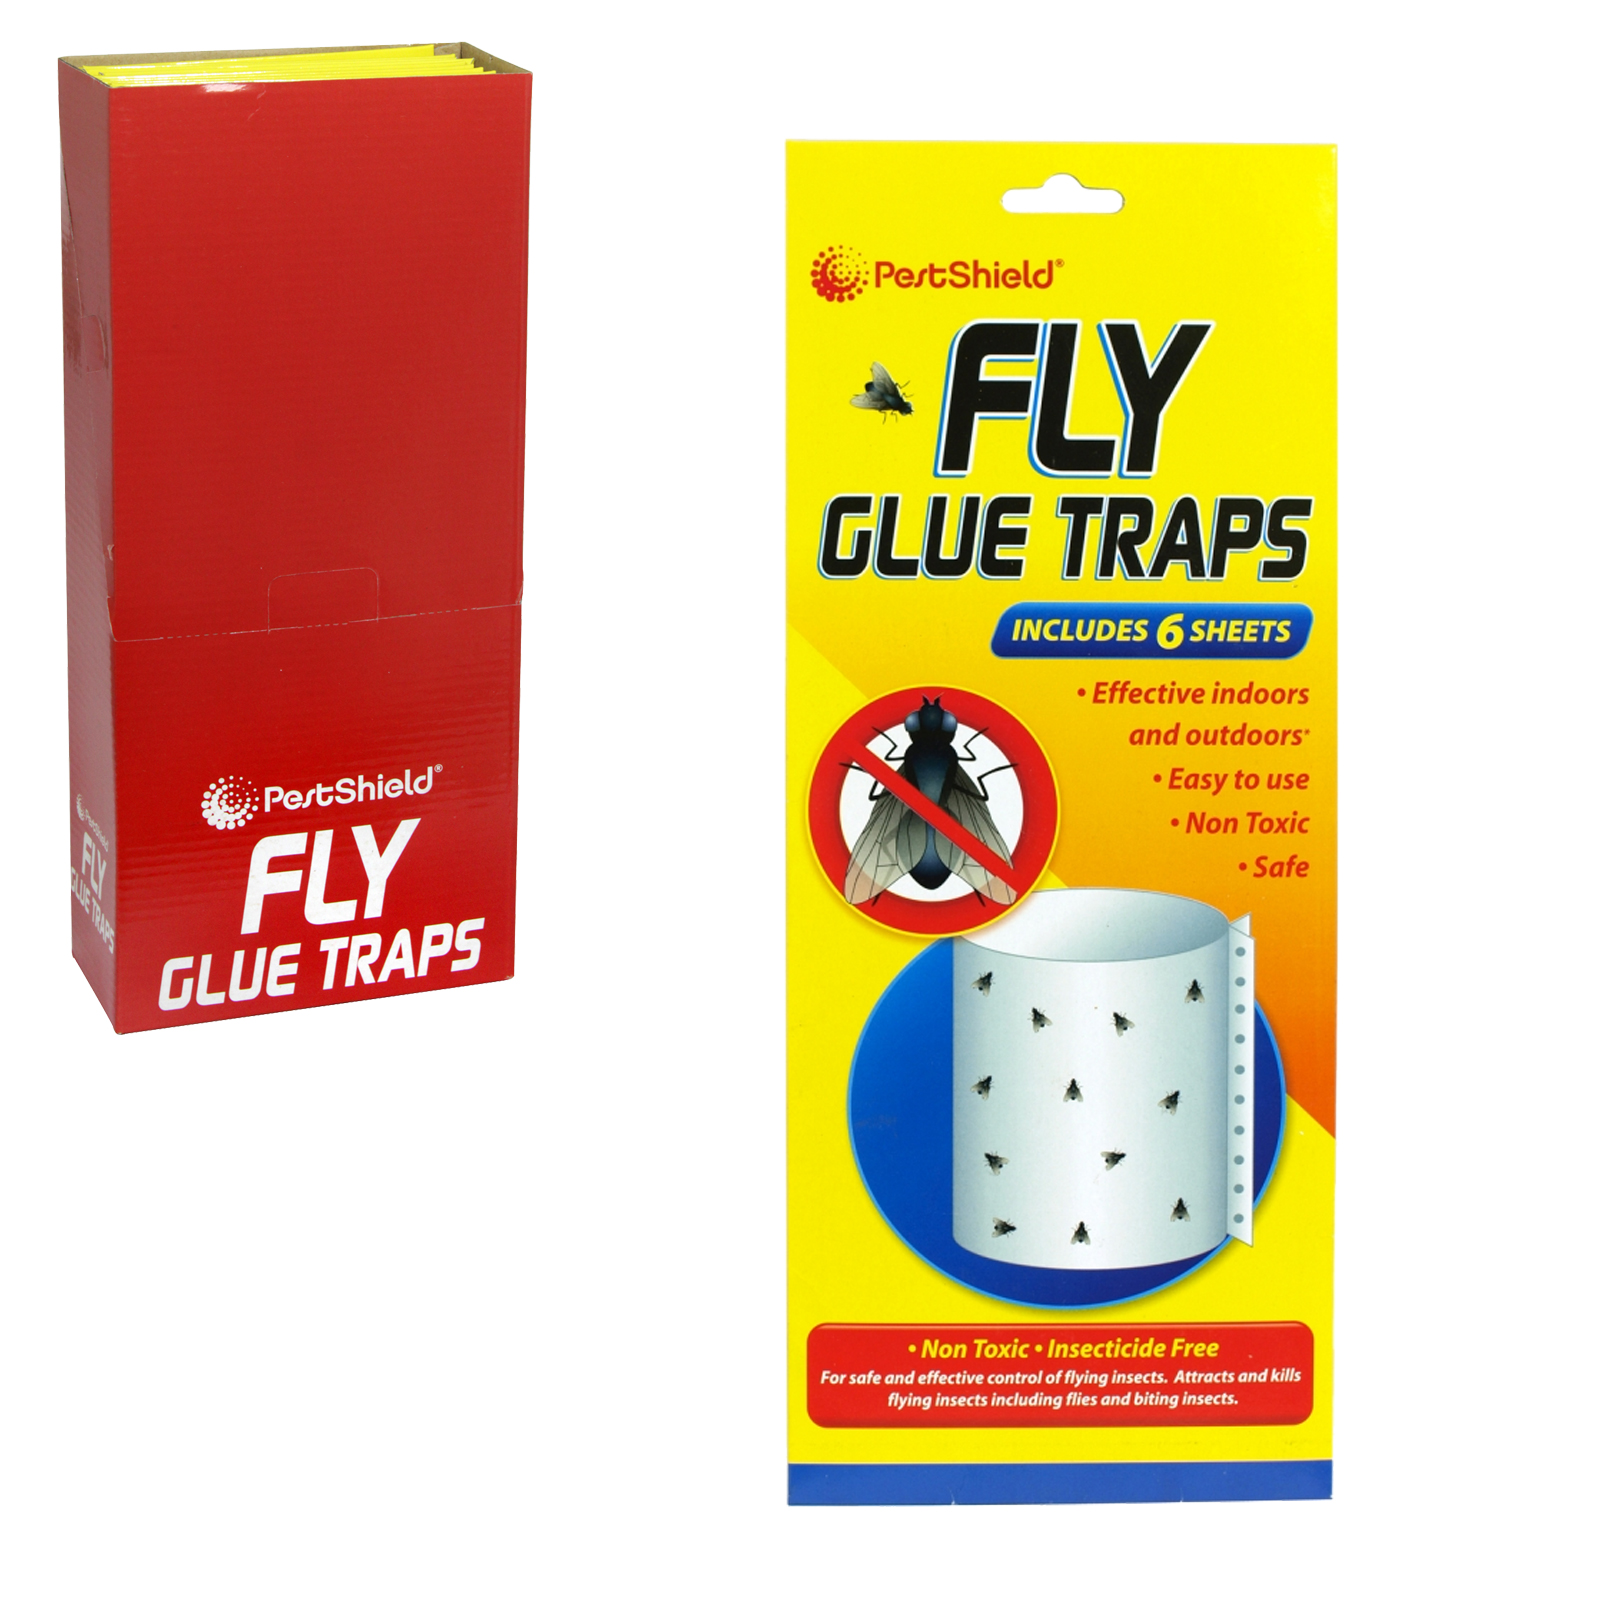 PESTSHEILD 4PK FLY GLUE TRAPS X12